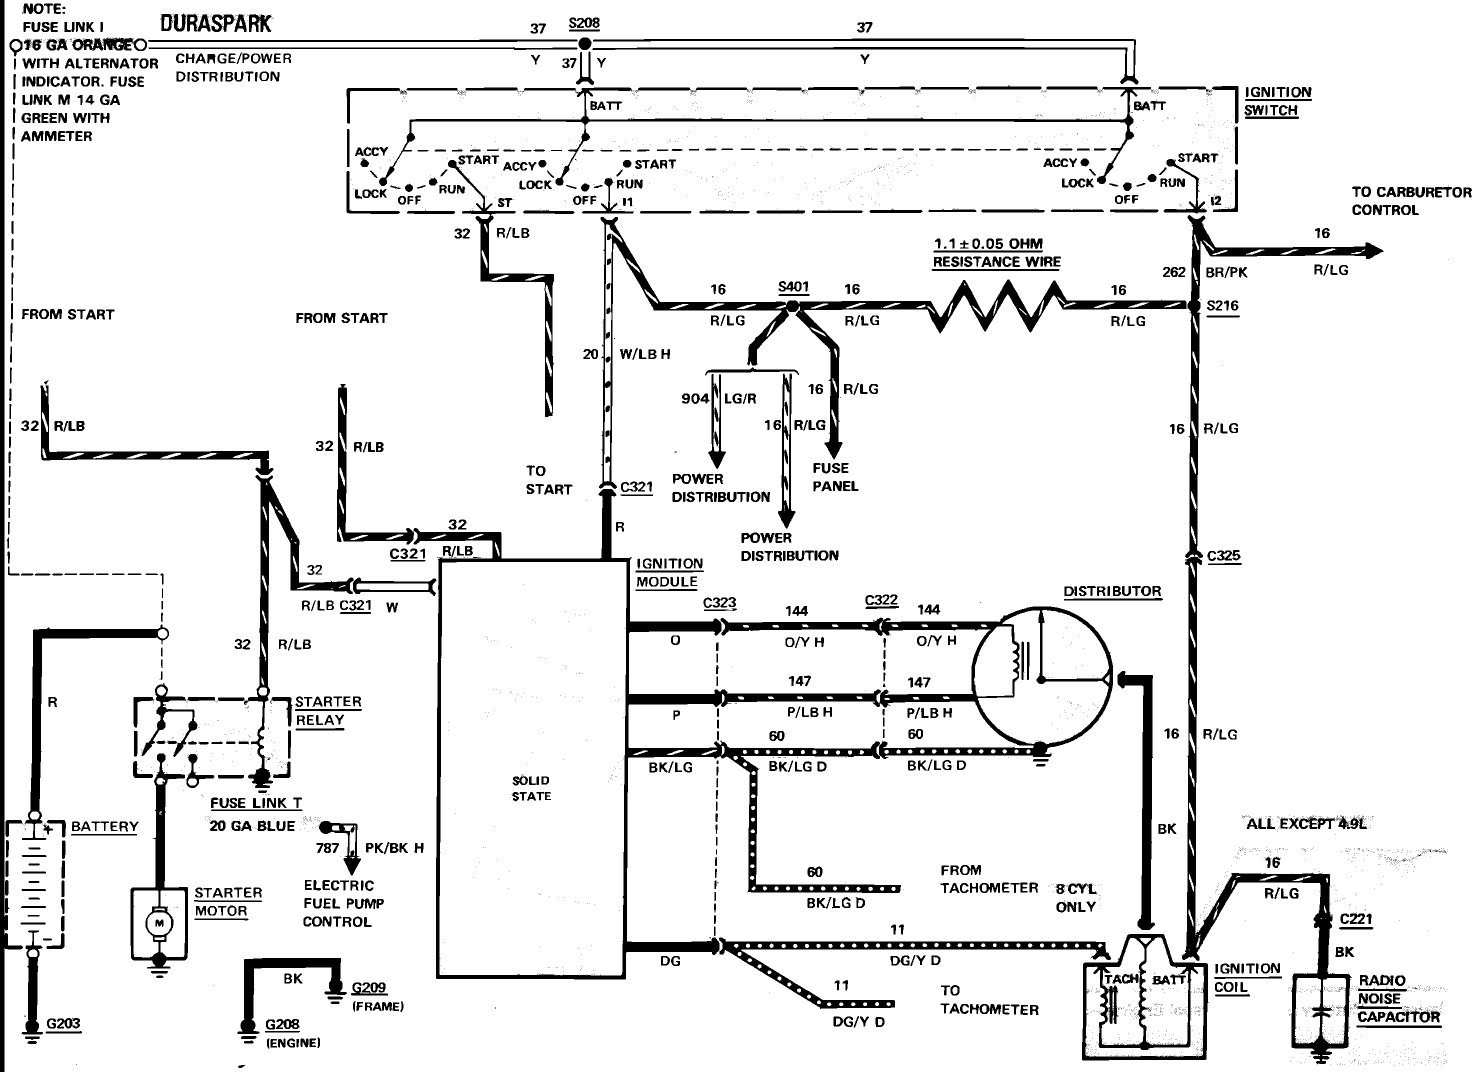 alternator wiring diagram for 1985 ford f 150 wiring diagram database. Black Bedroom Furniture Sets. Home Design Ideas